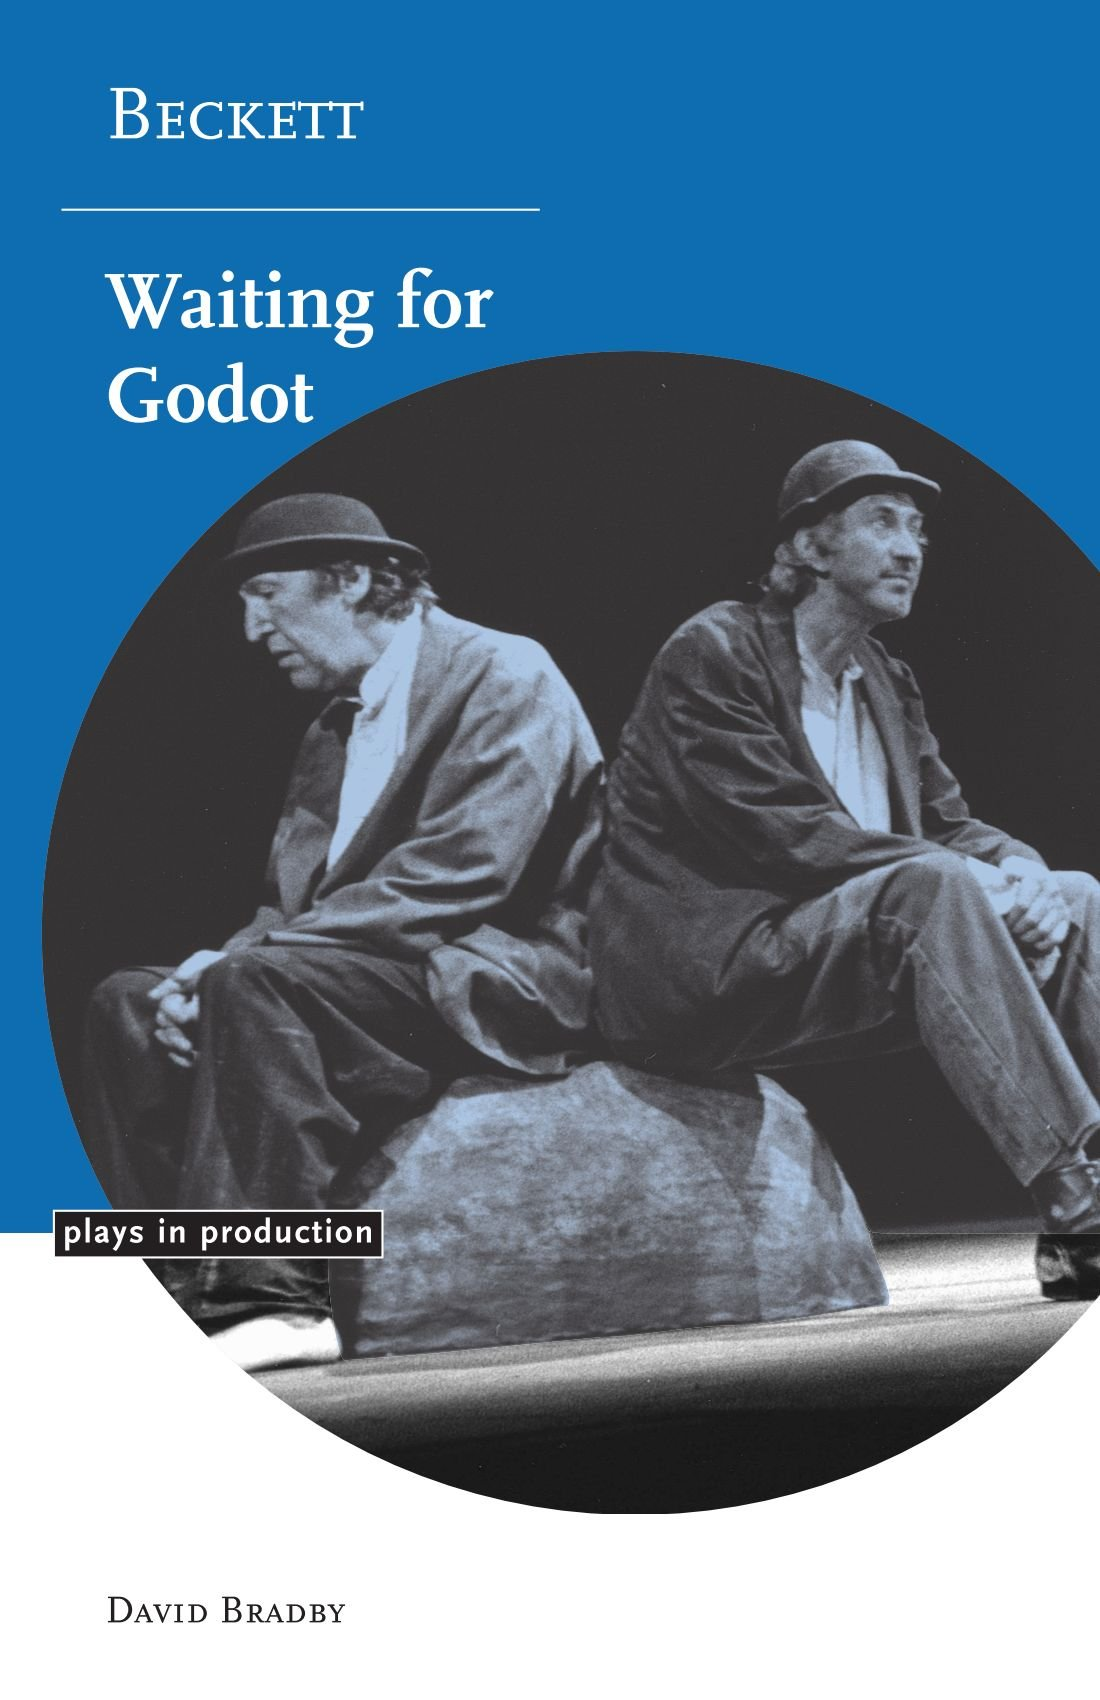 Download Beckett: Waiting for Godot (Plays in Production) pdf